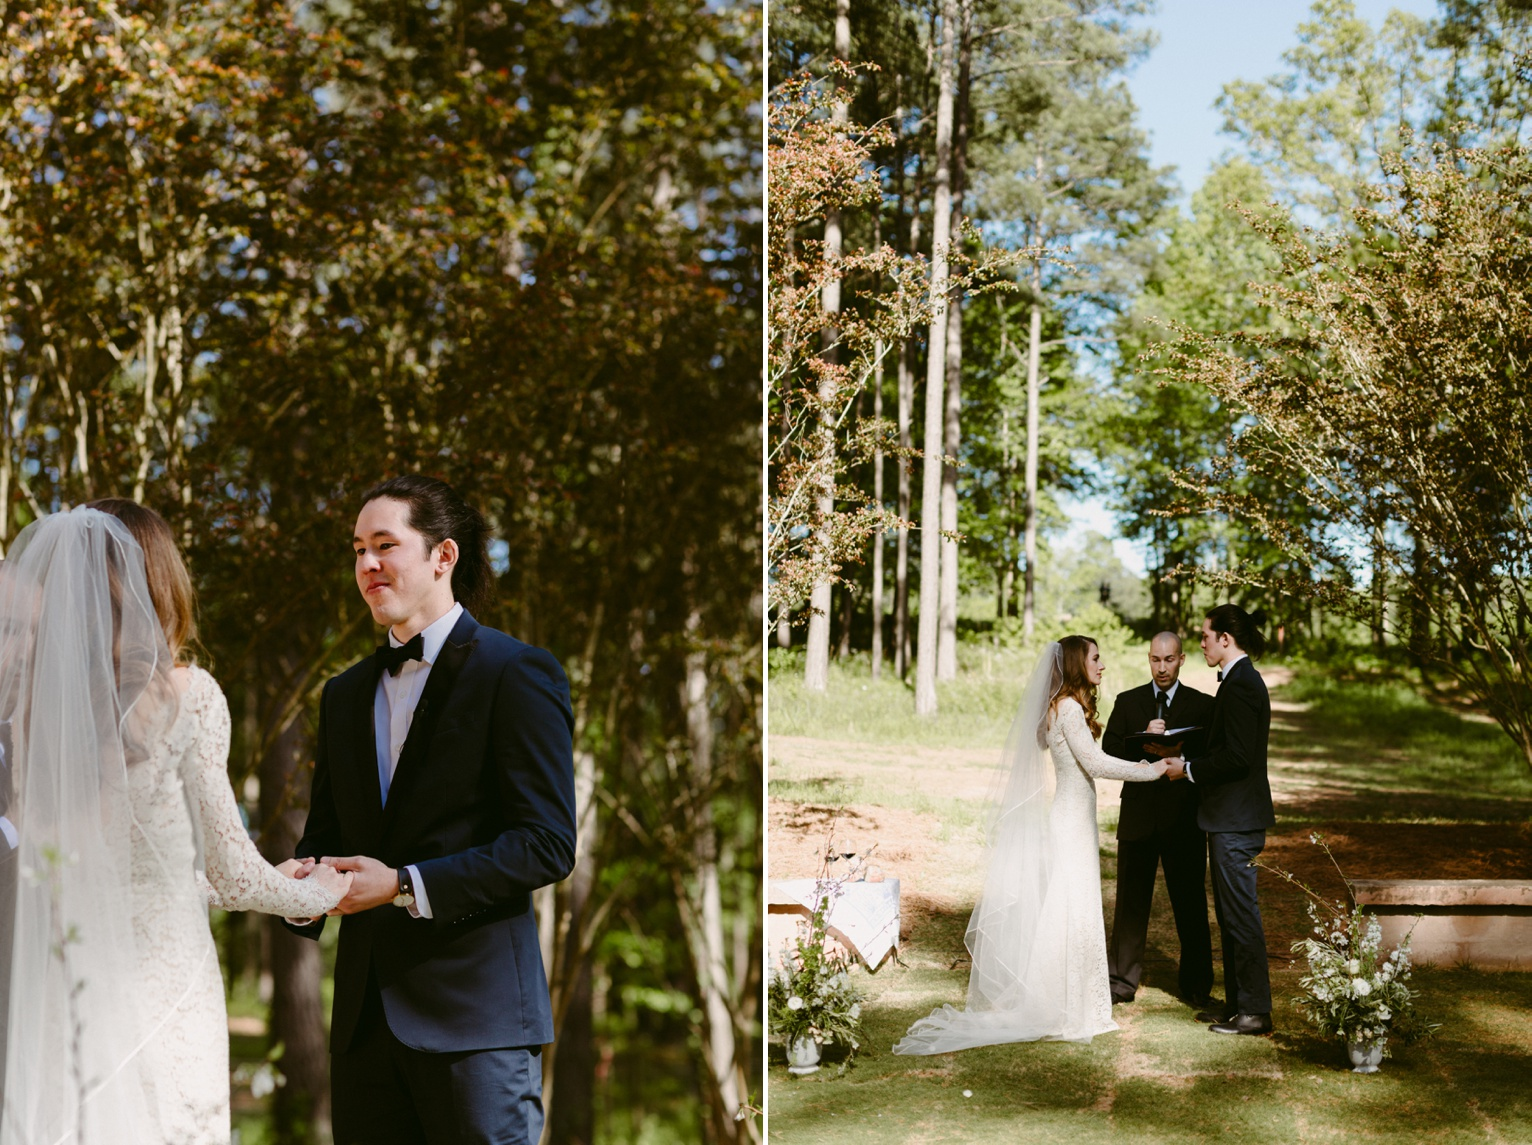 Dreamtownco.com_blog_Corey&Annie_Wedding_0126.jpg